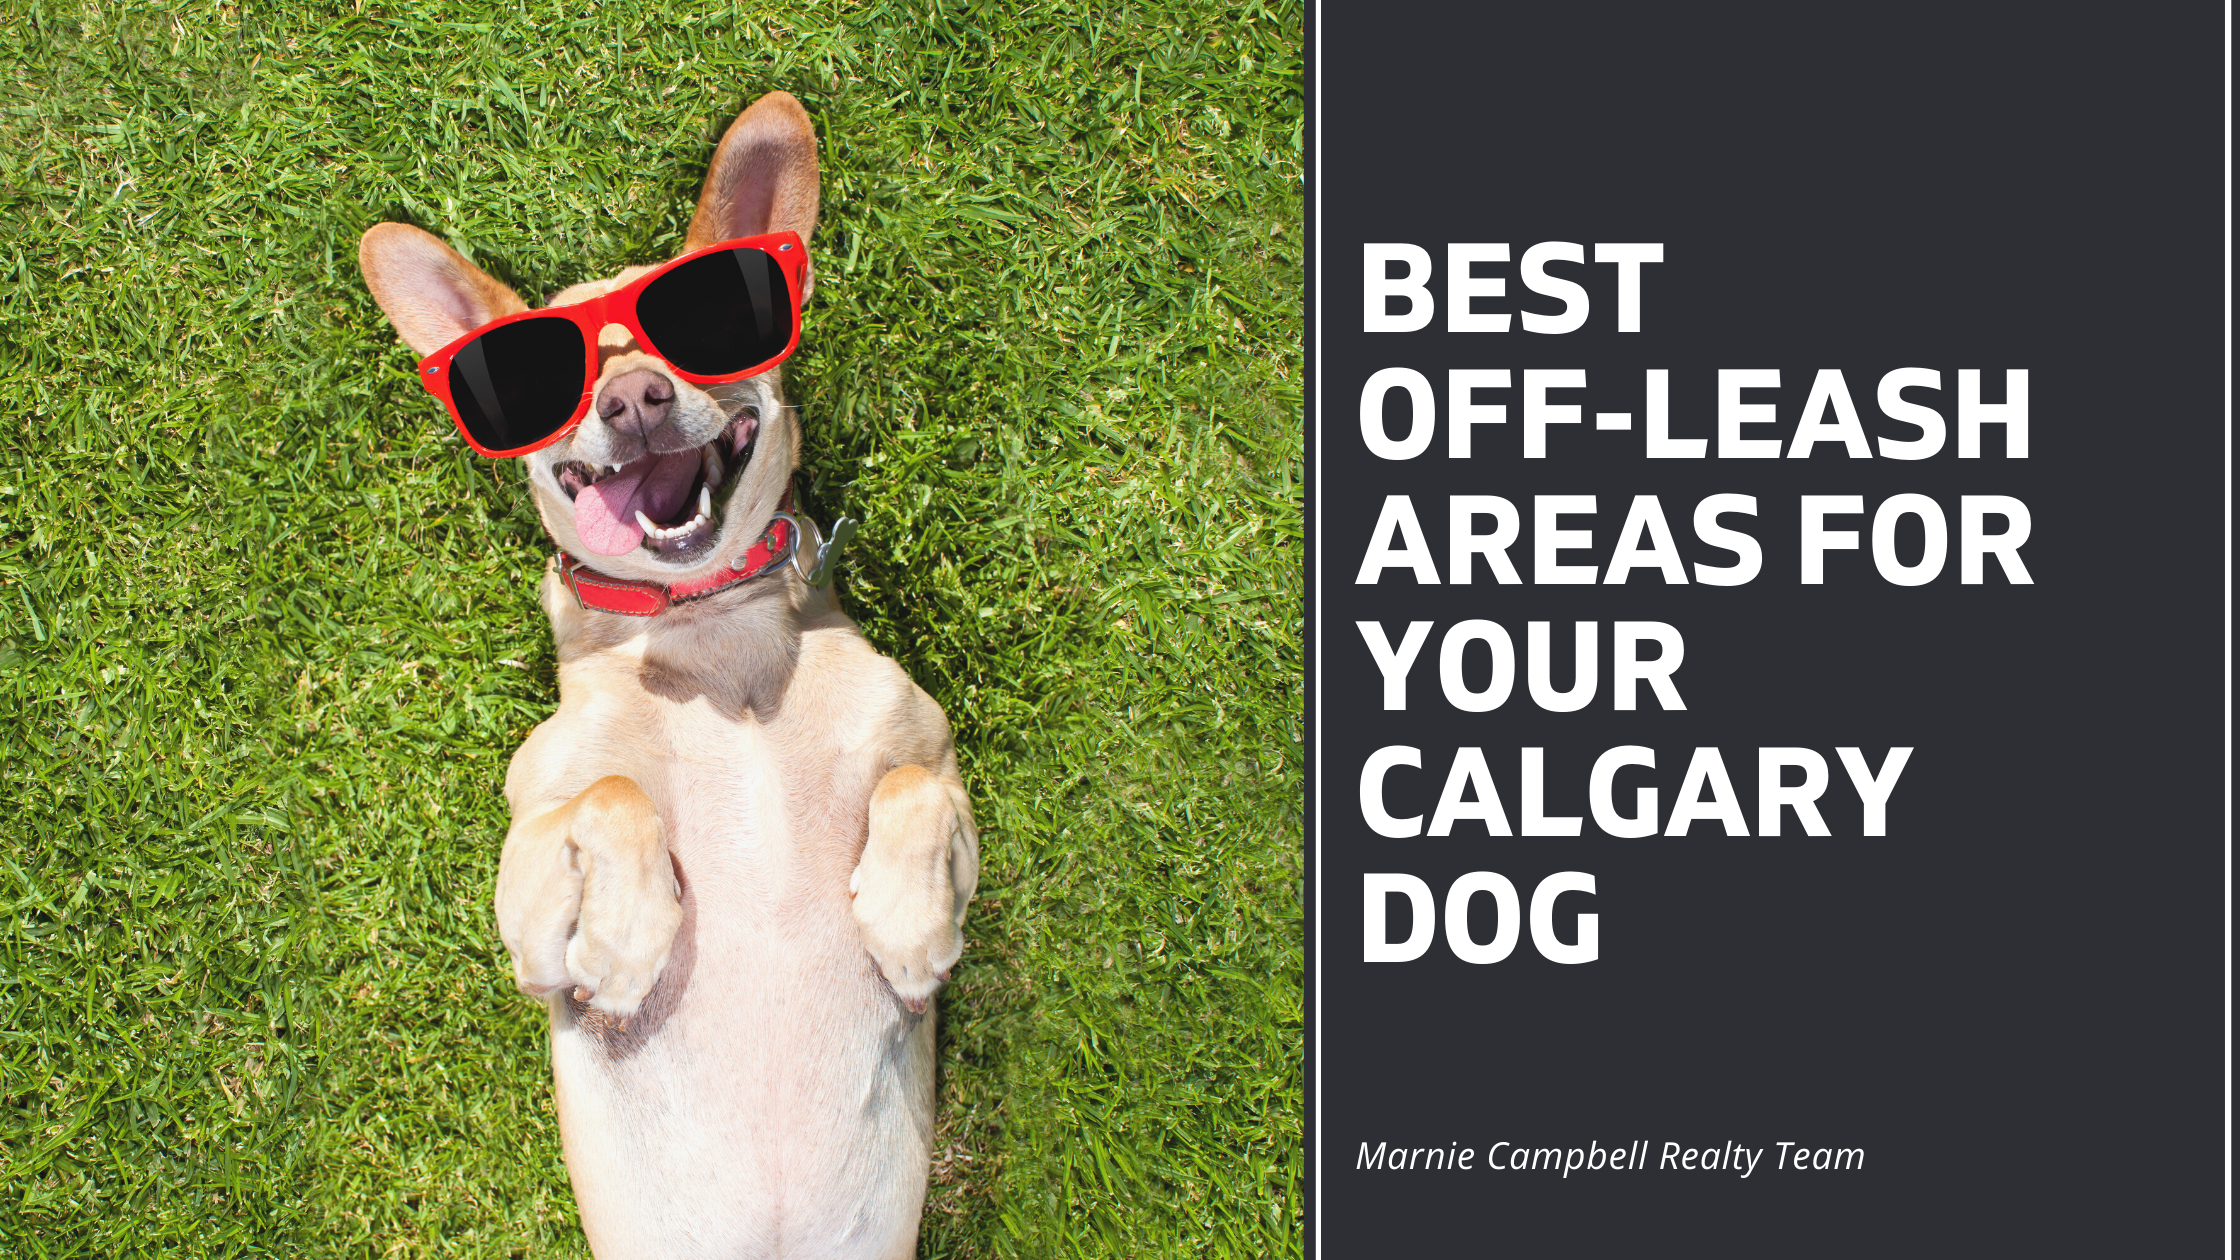 Best Off-Leash Areas for Calgary Dogs